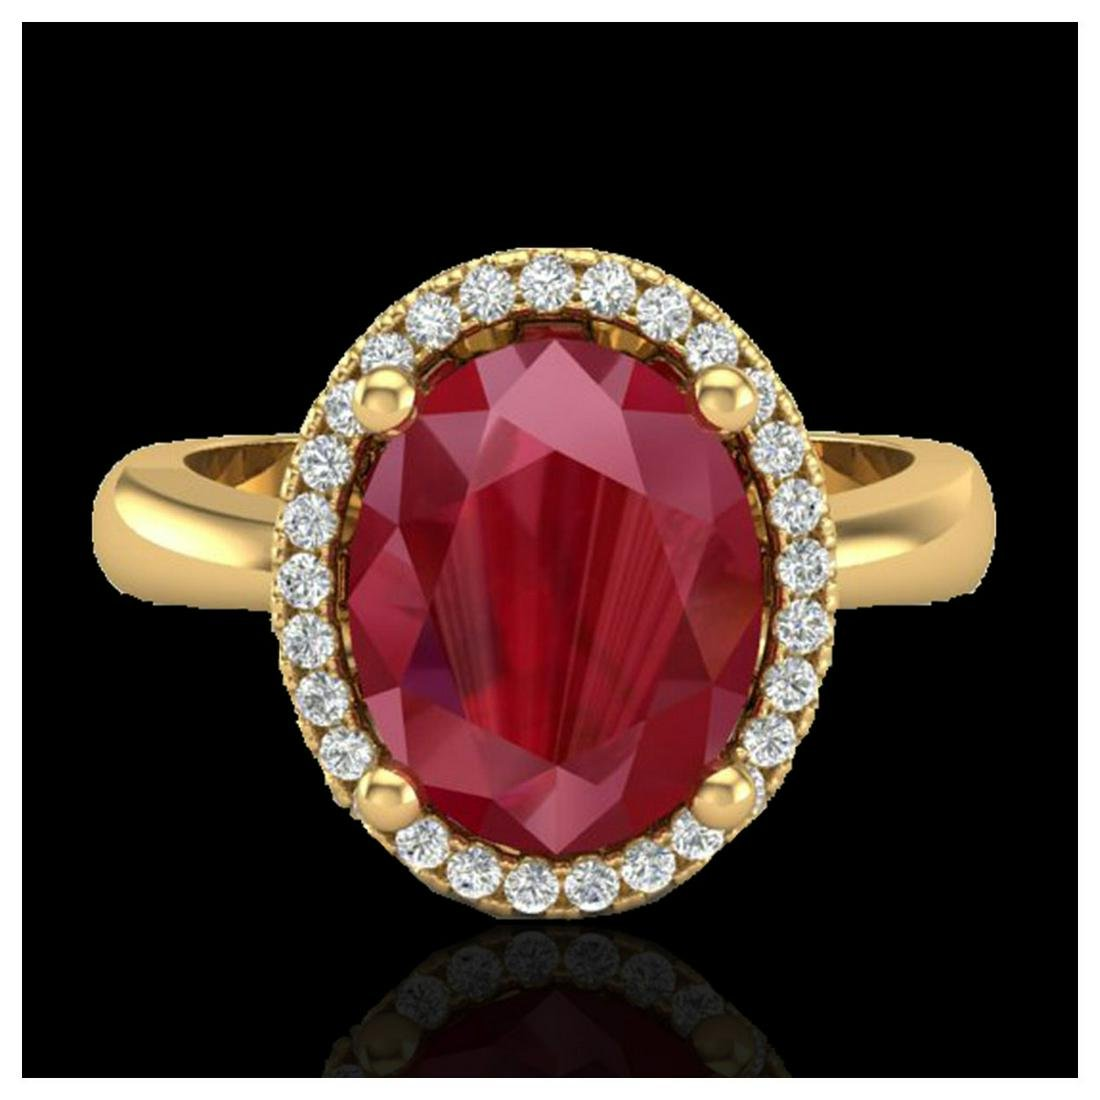 3 ctw Ruby And VS/SI Diamond Ring 18K Yellow Gold -